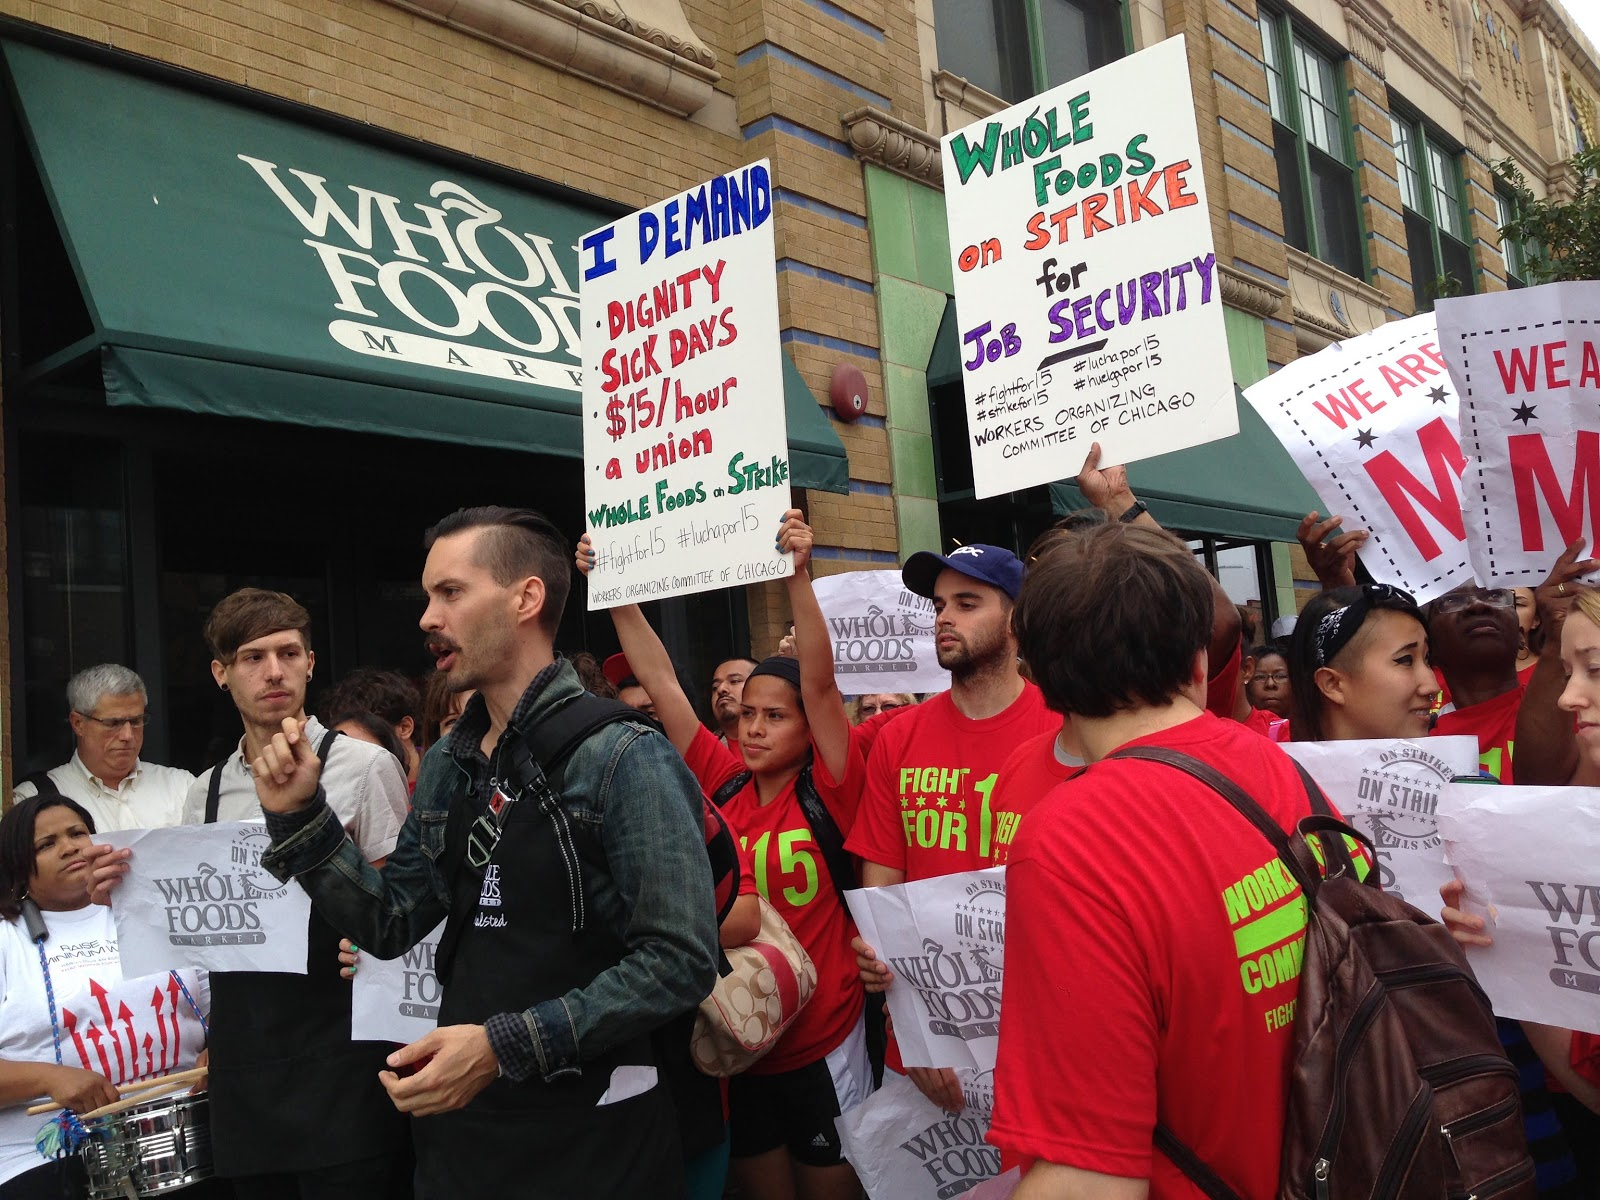 Fight for 15, Chicago, Whole Foods